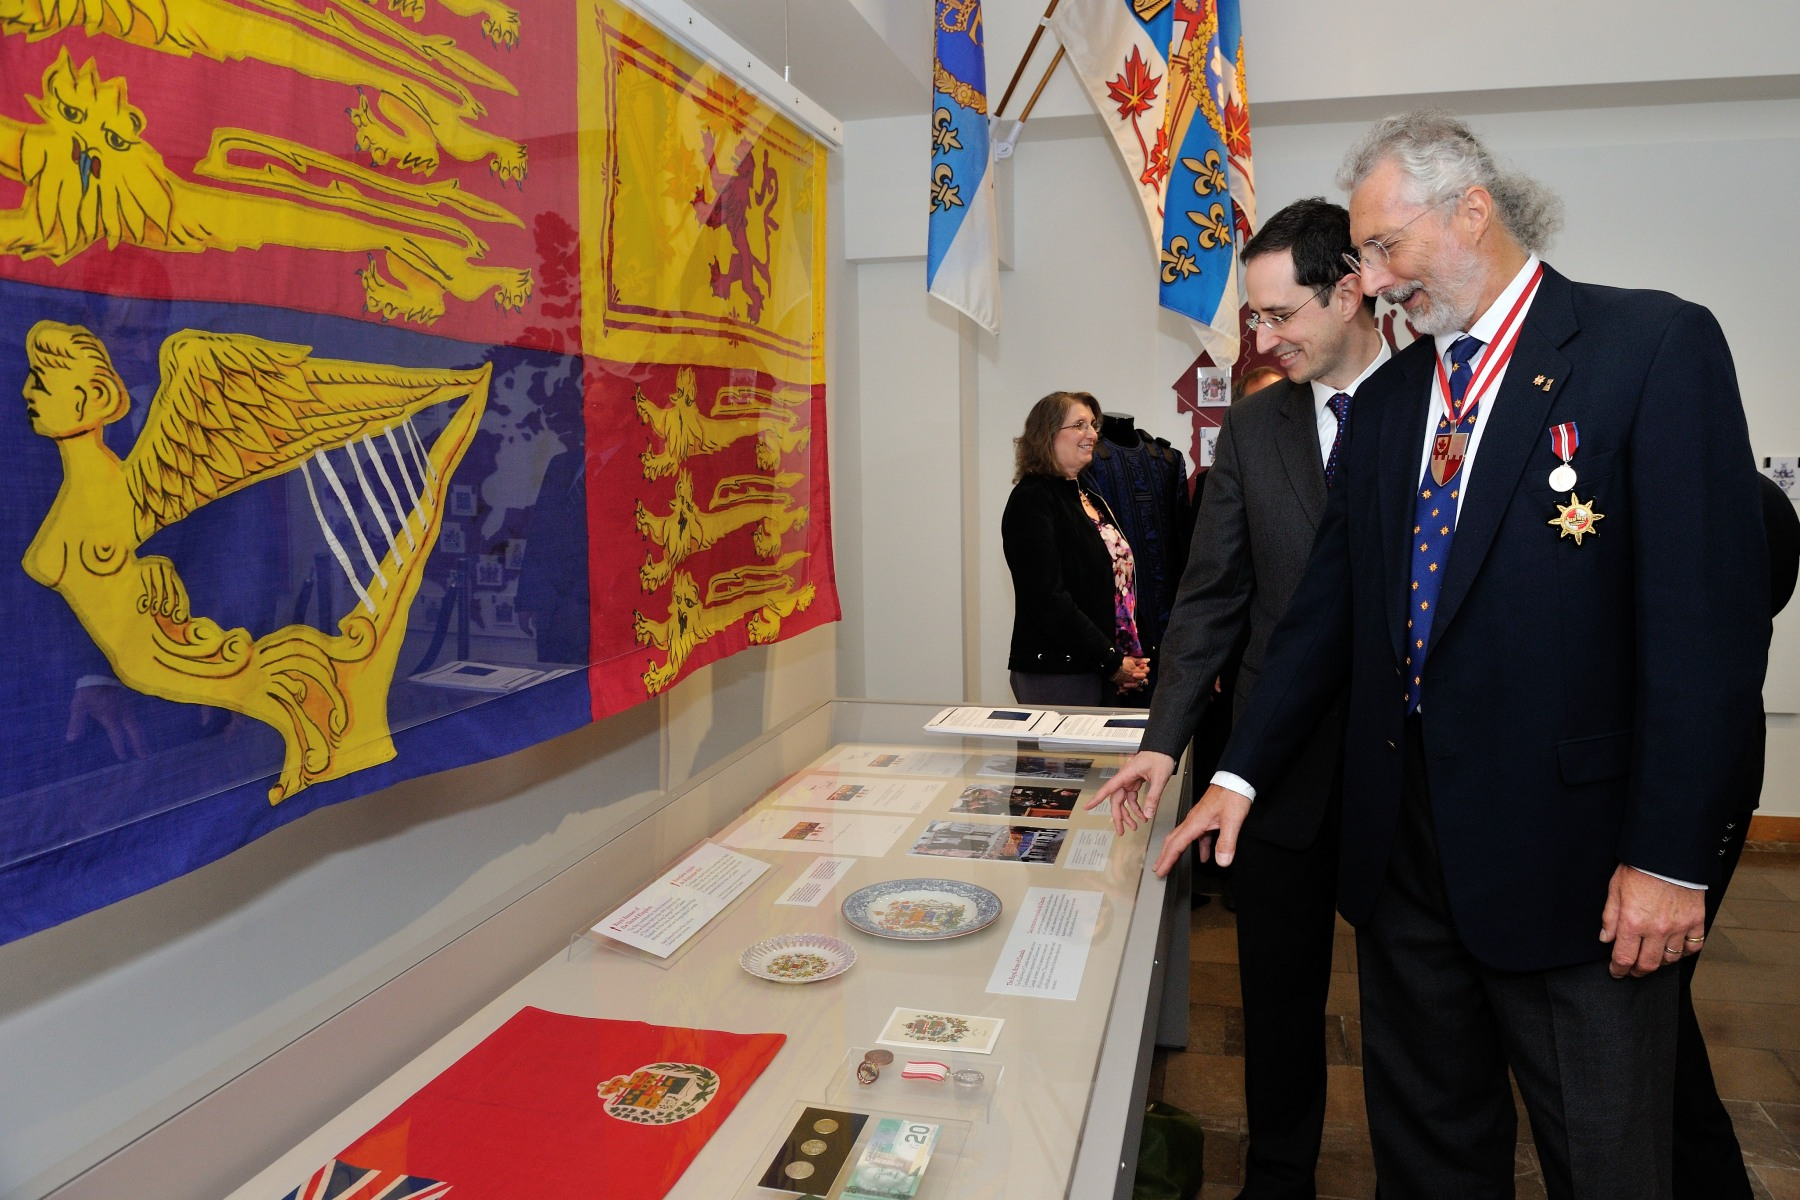 The exhibit also includes the work of the Canadian Heraldic Authority in creating coats of arms and other national emblems. Highlights include the Royal Banner of King George VI, flown at Rideau Hall during the Royal visit of 1939.